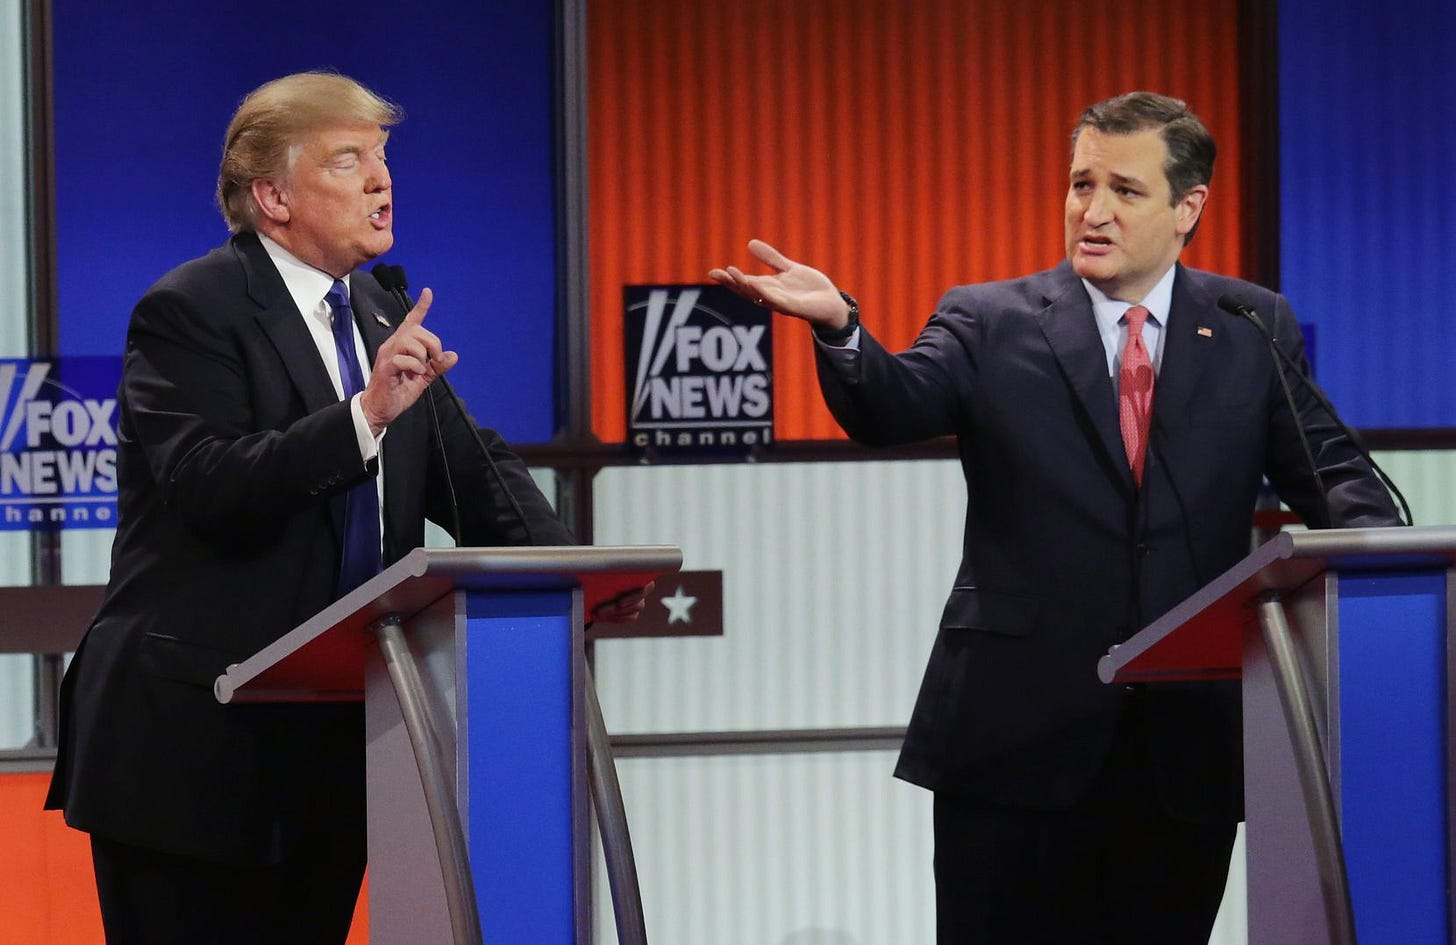 Ted Cruz, affirming Trump's refusal to concede, angles to be Trumpiest  post-Trump contender